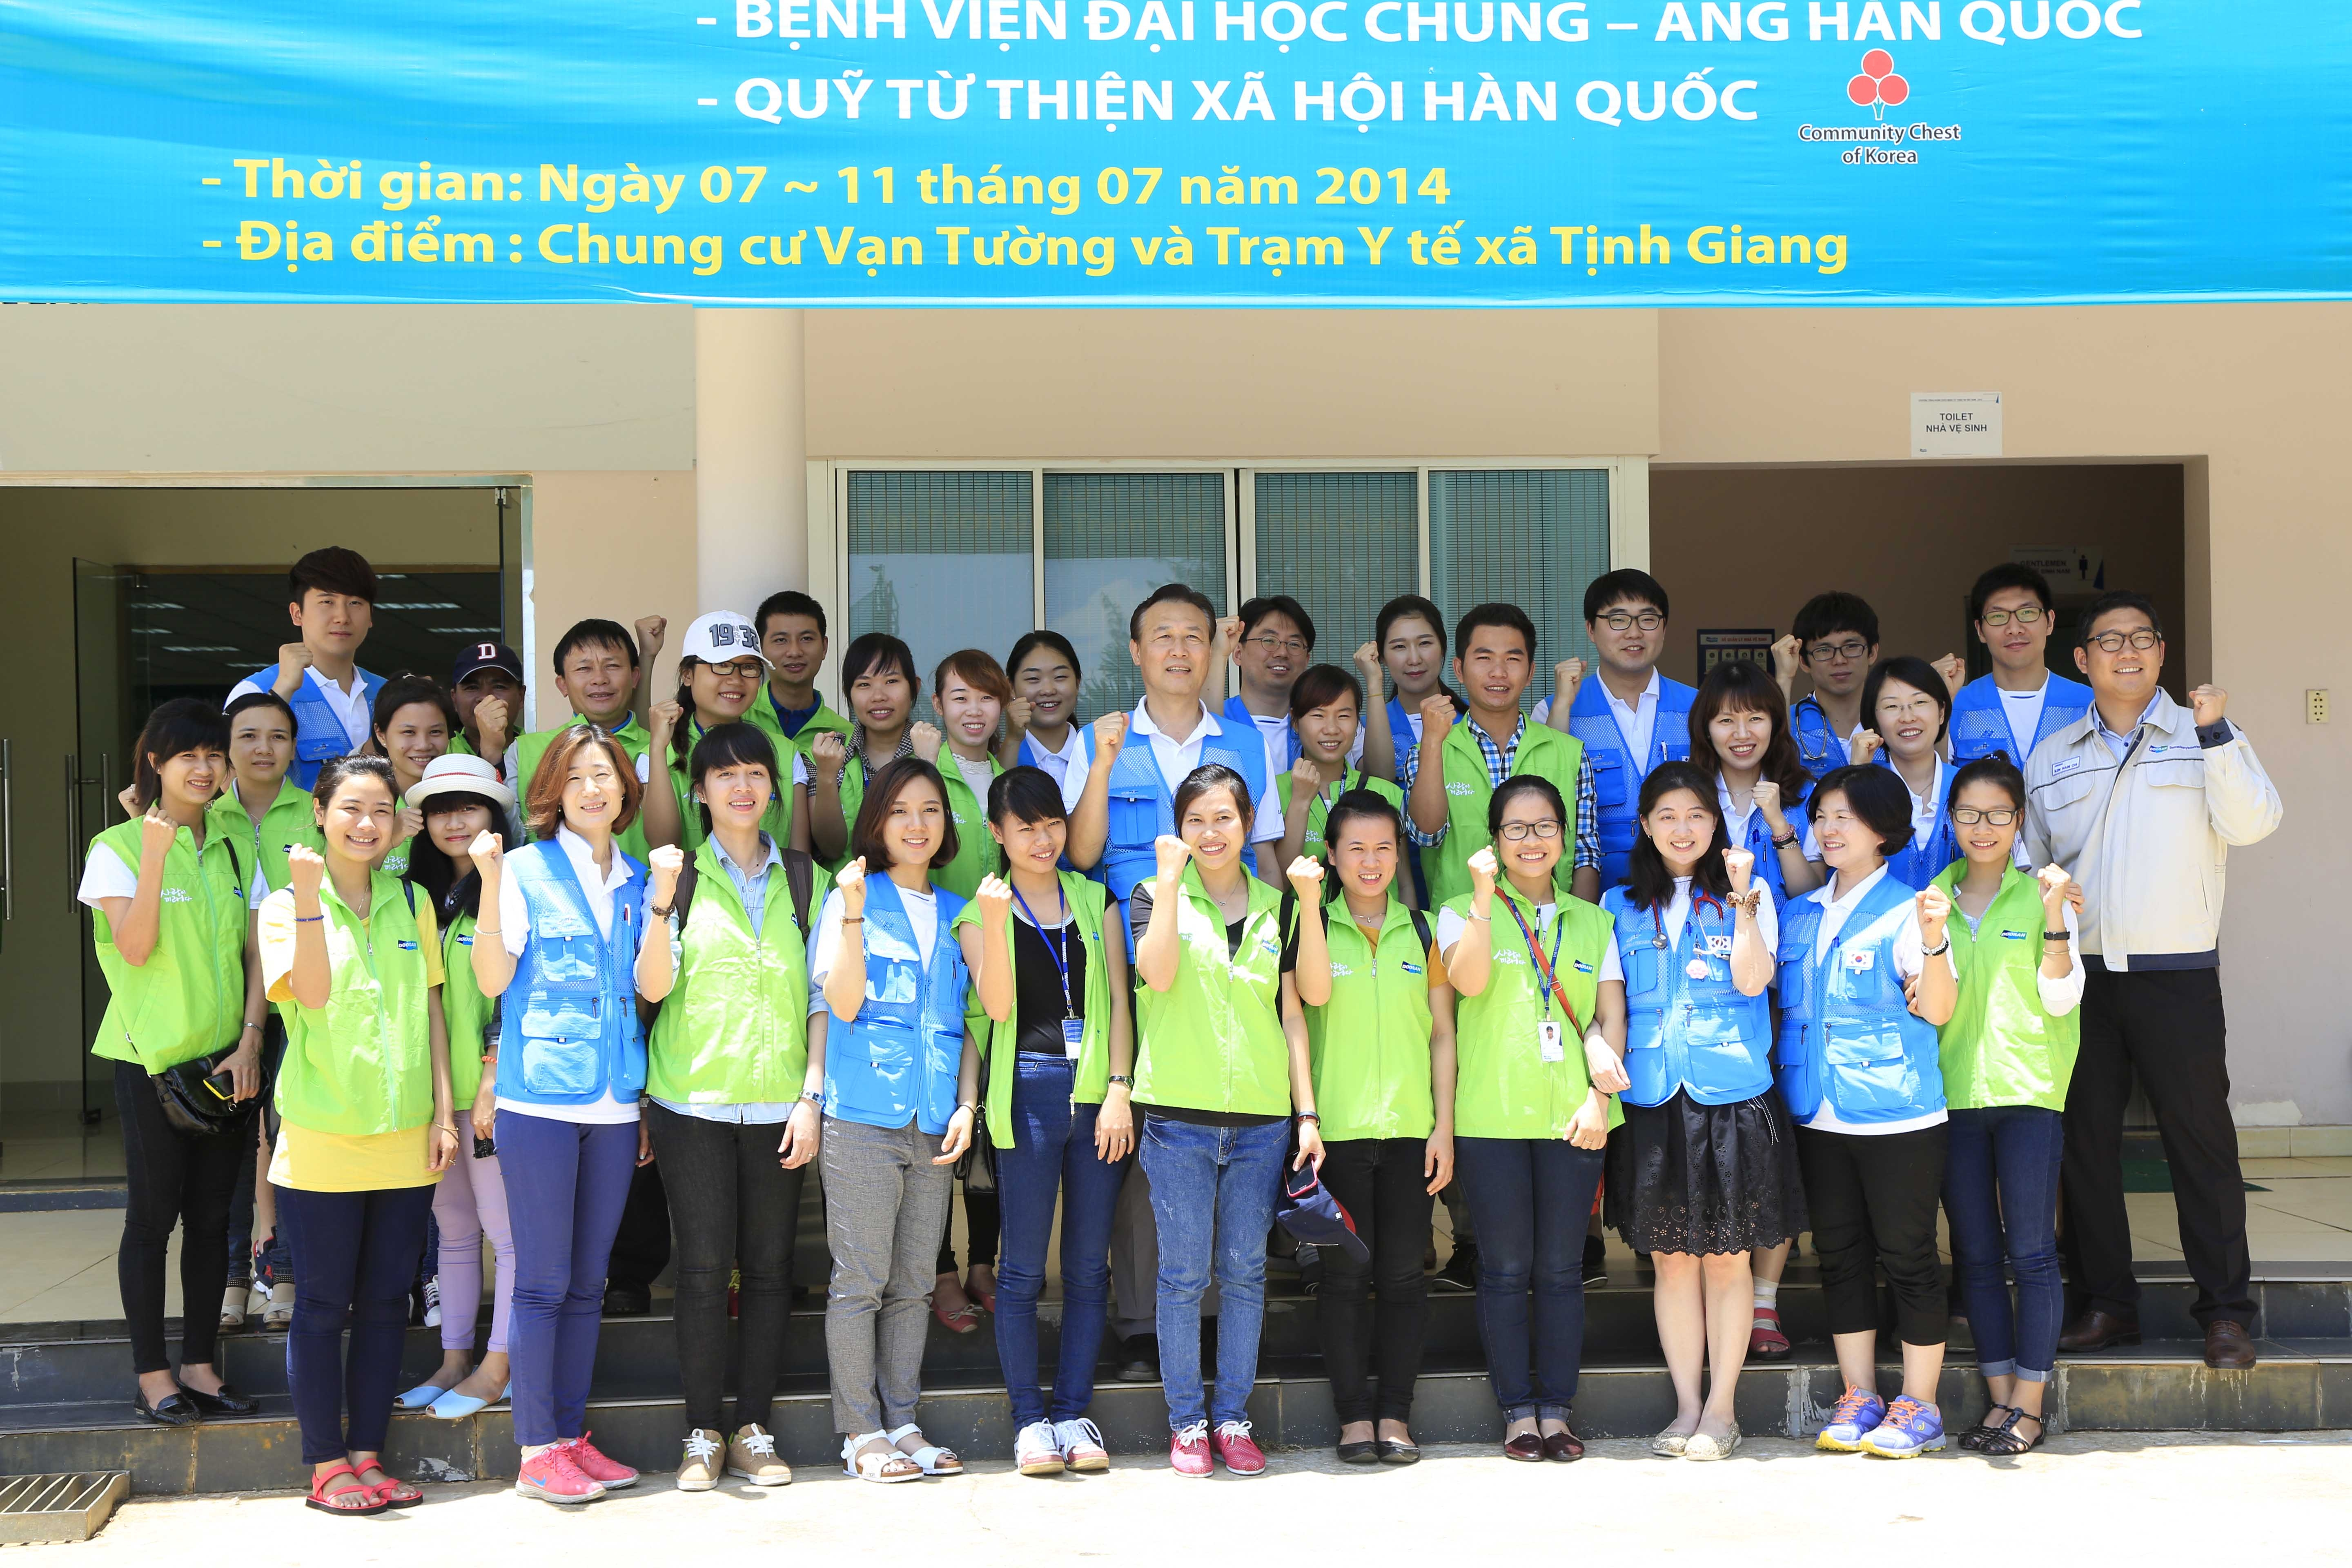 Doosan attends the 6th annual medical service at Quang Ngai province